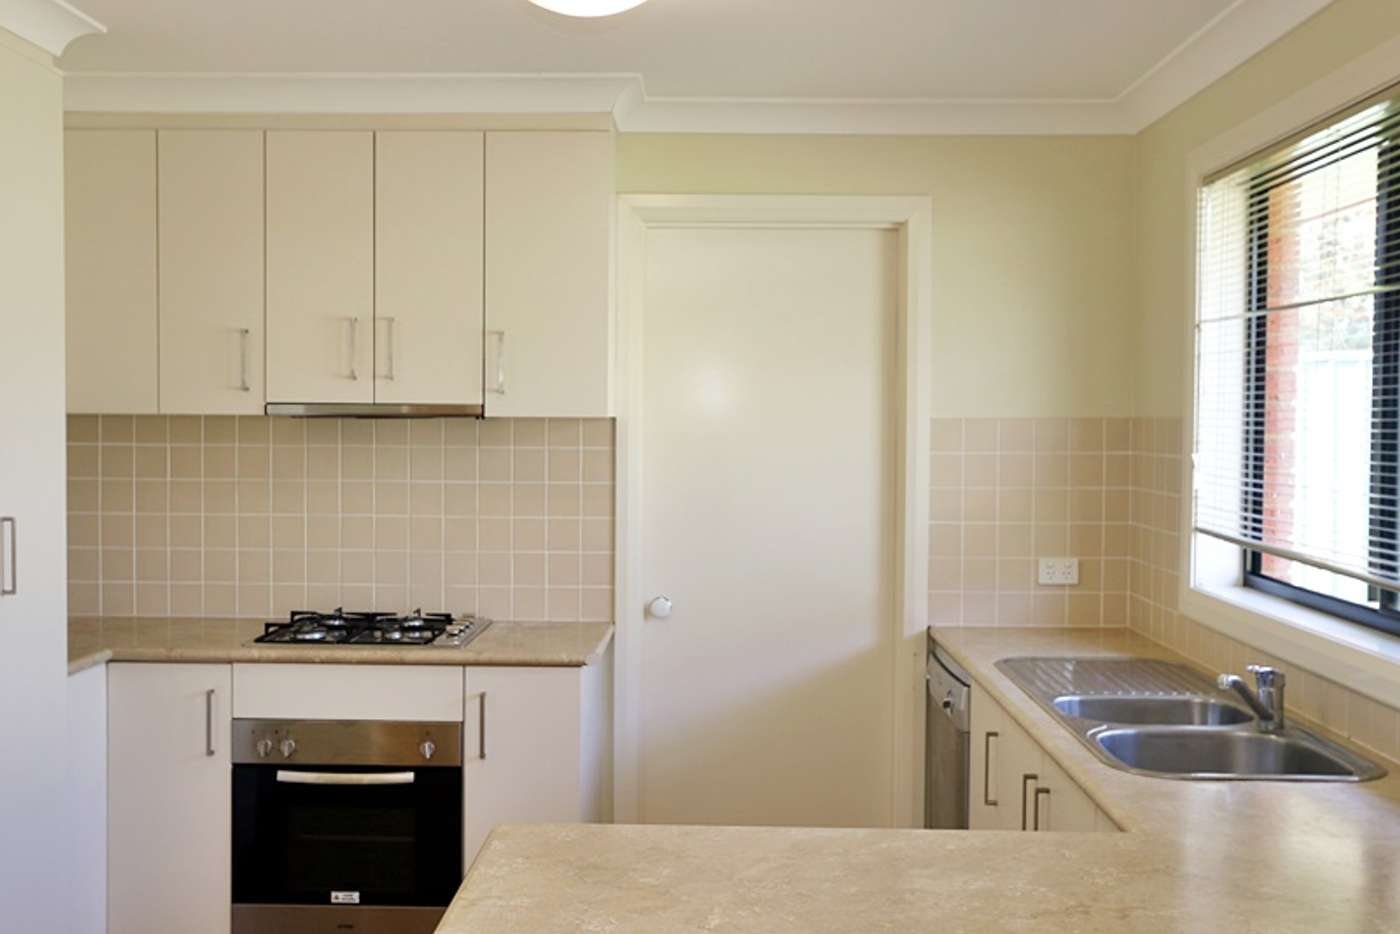 Main view of Homely unit listing, 1/8 Protea Place, Forest Hill NSW 2651